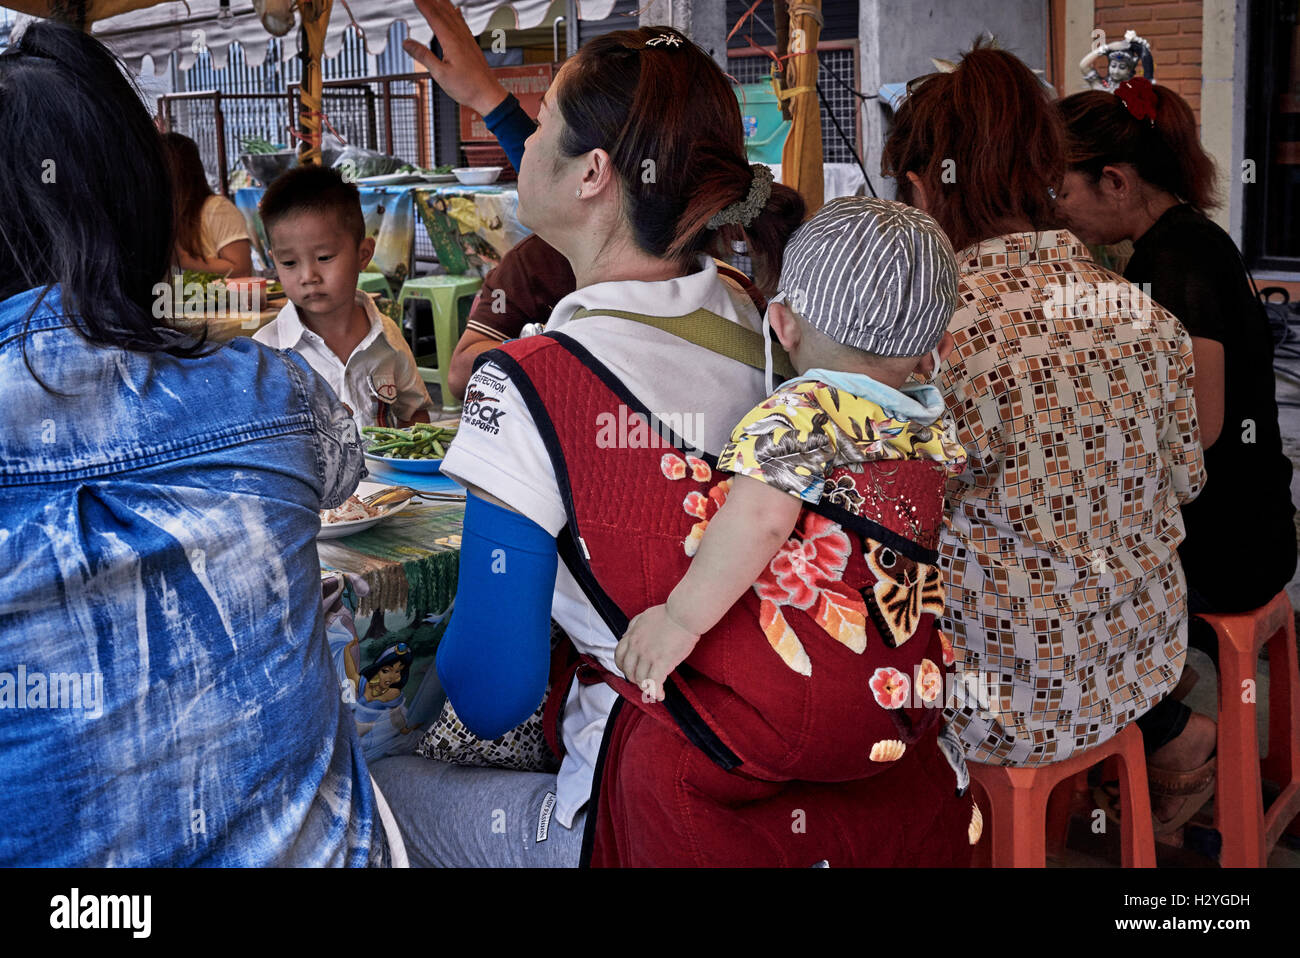 Thai mother and baby carried in a back sling harness and eating at an open air restaurant. Thailand S. E. Asia - Stock Image